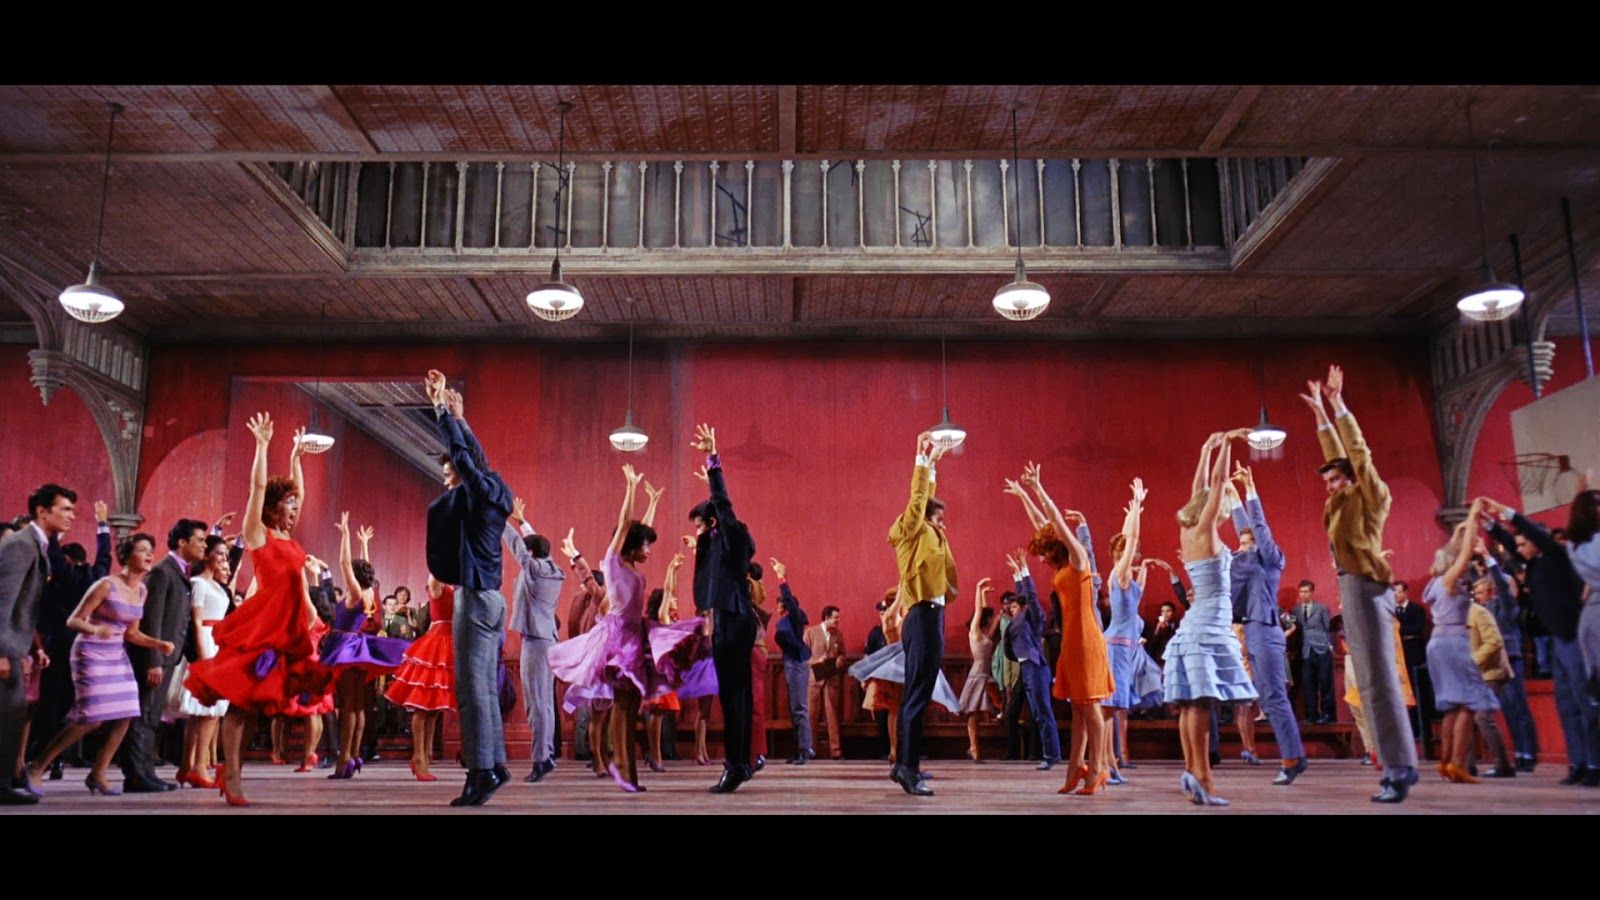 West Side Story Dance At The Gym Really All The Costumes By Irene Sharaff Muted Indigo Blues Oc West Side Story Movie West Side Story West Side Story 1961